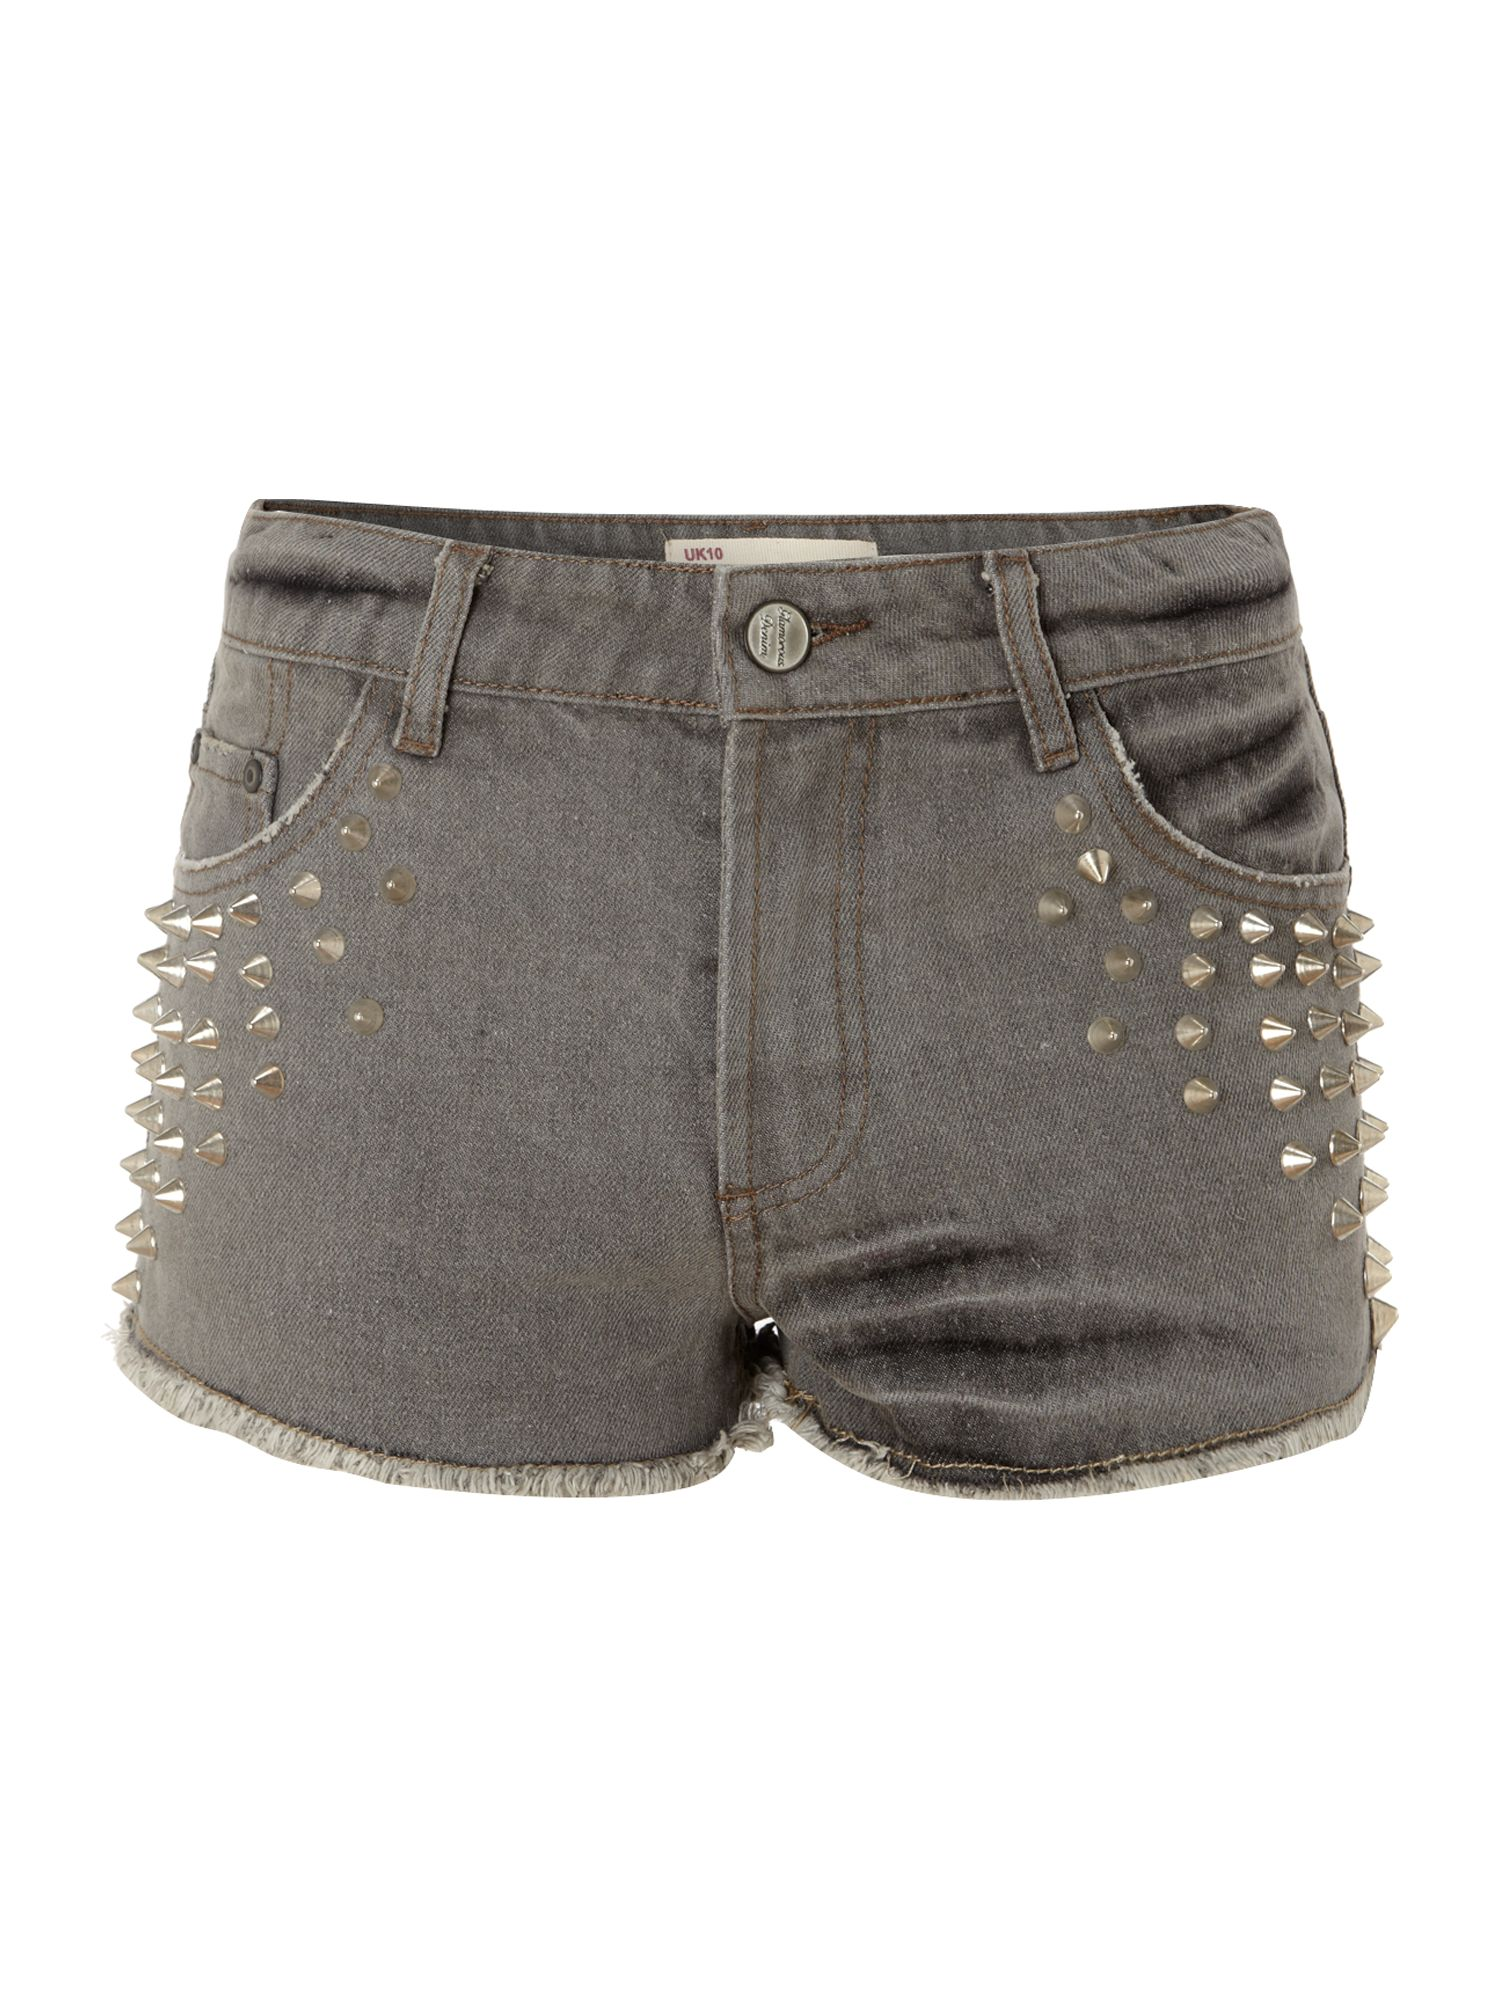 Acid wash stud short